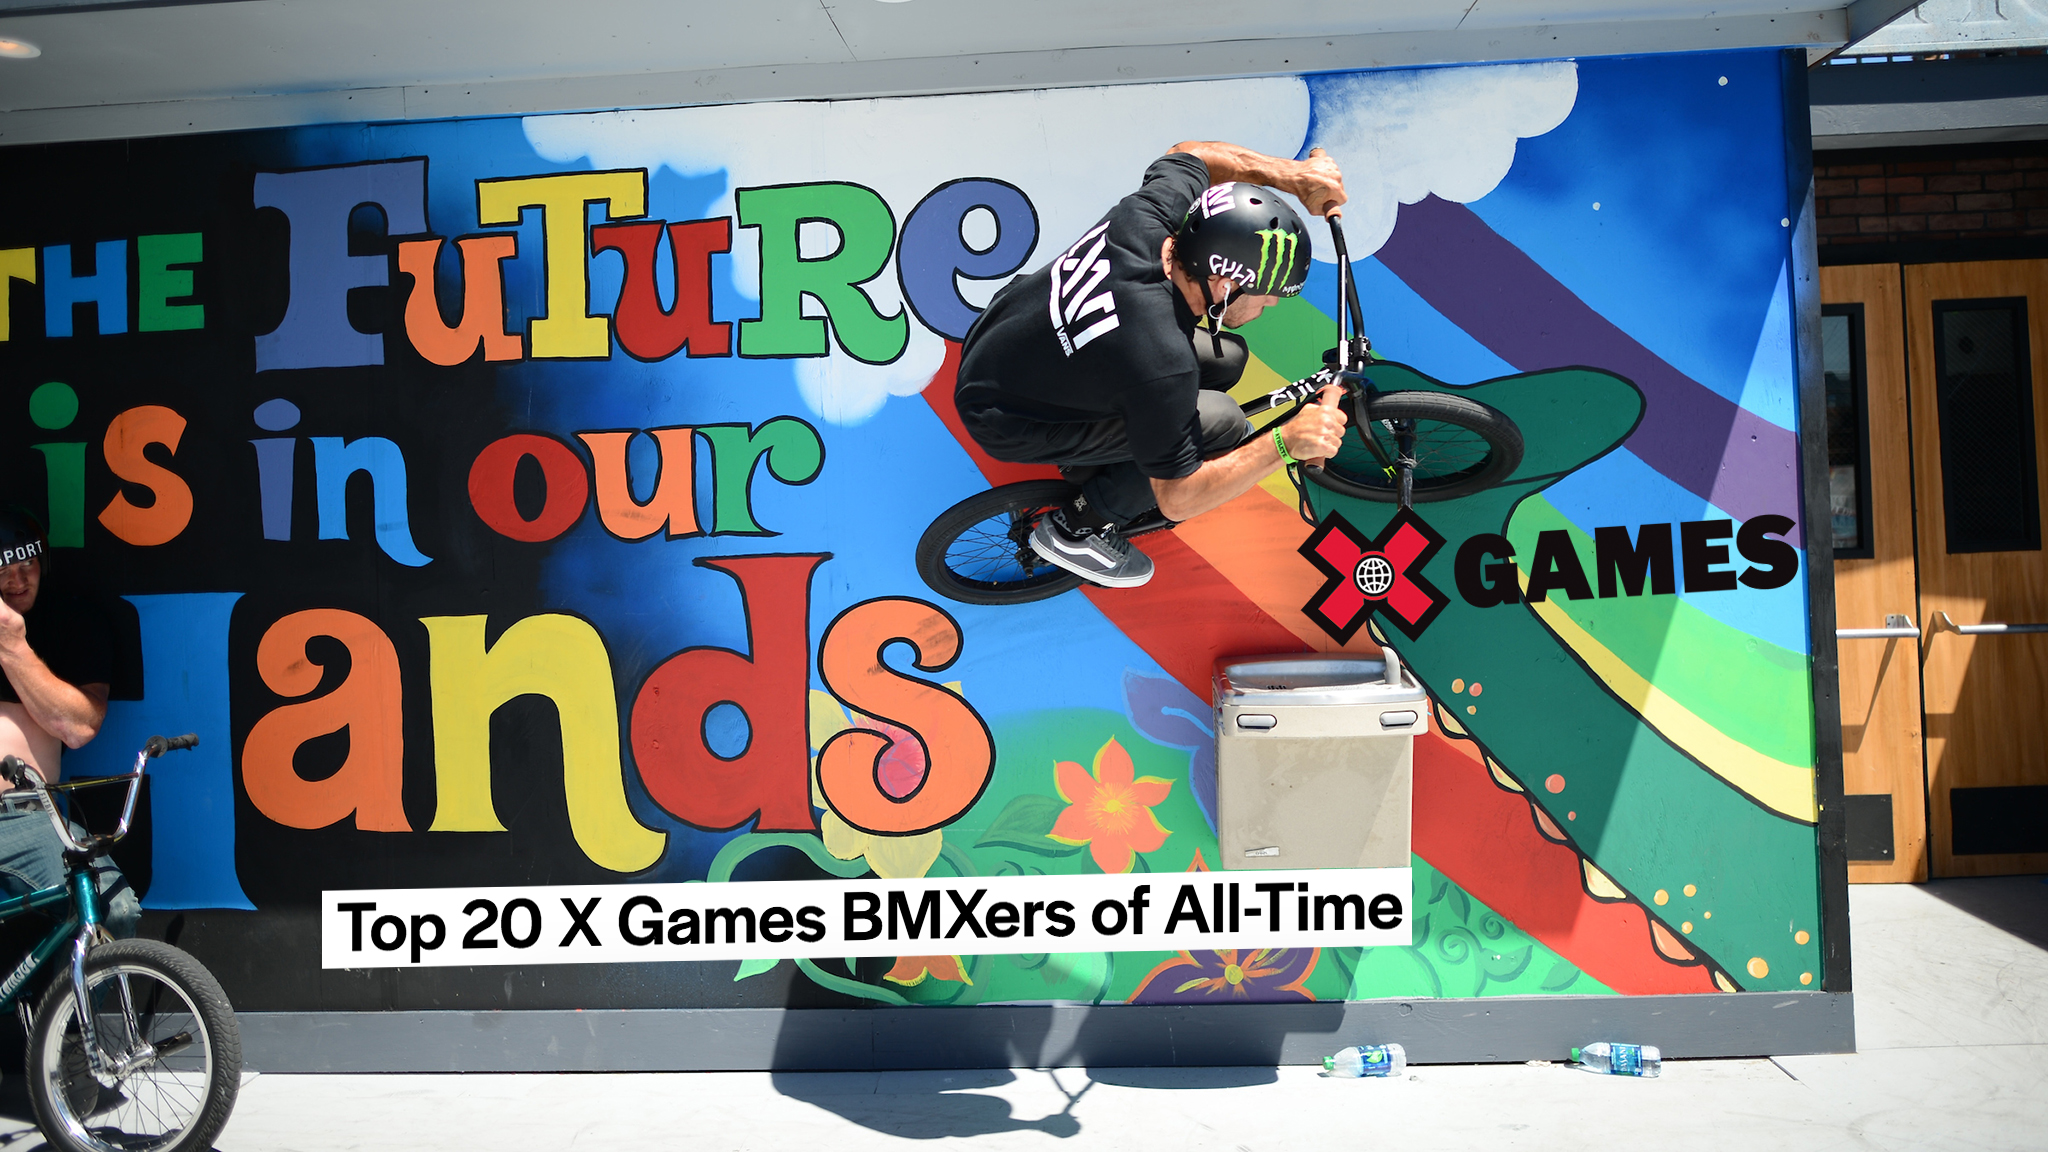 The Top 20 X Games BMXers of All-Time